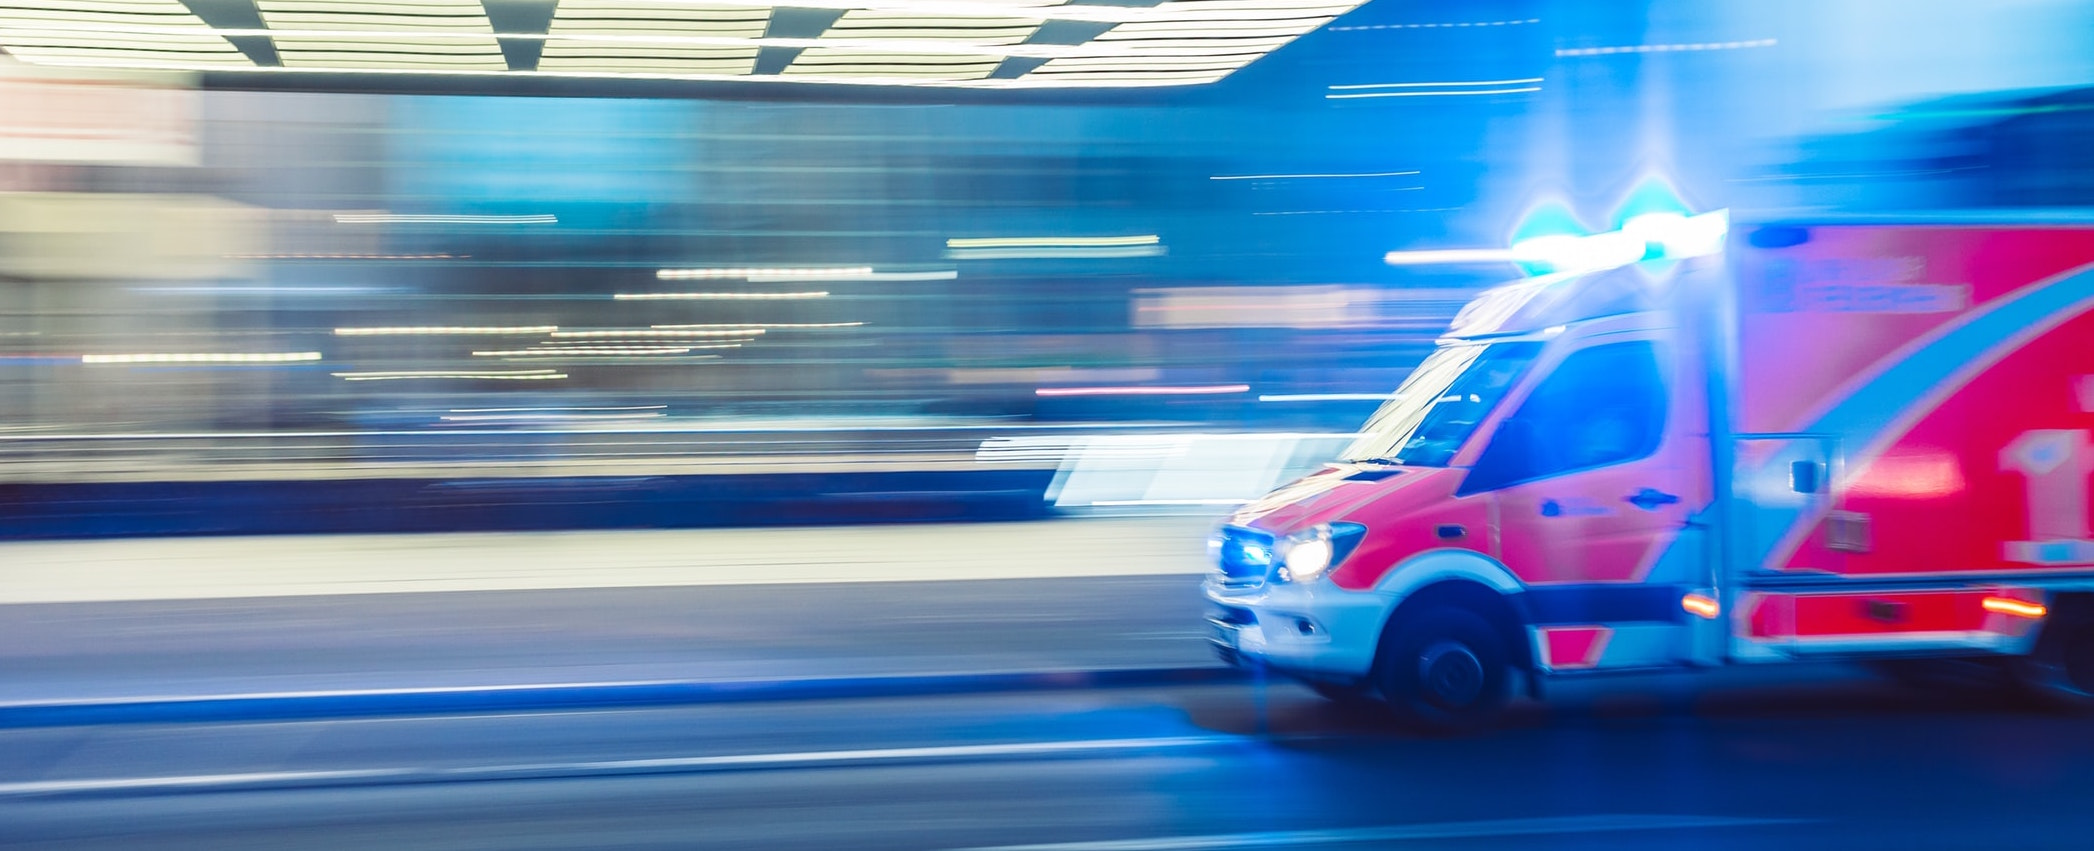 Ambulance on road Indiana Court of Appeals Holds That Insurer Owes Duty of Good Faith to Non-policyholder Insured